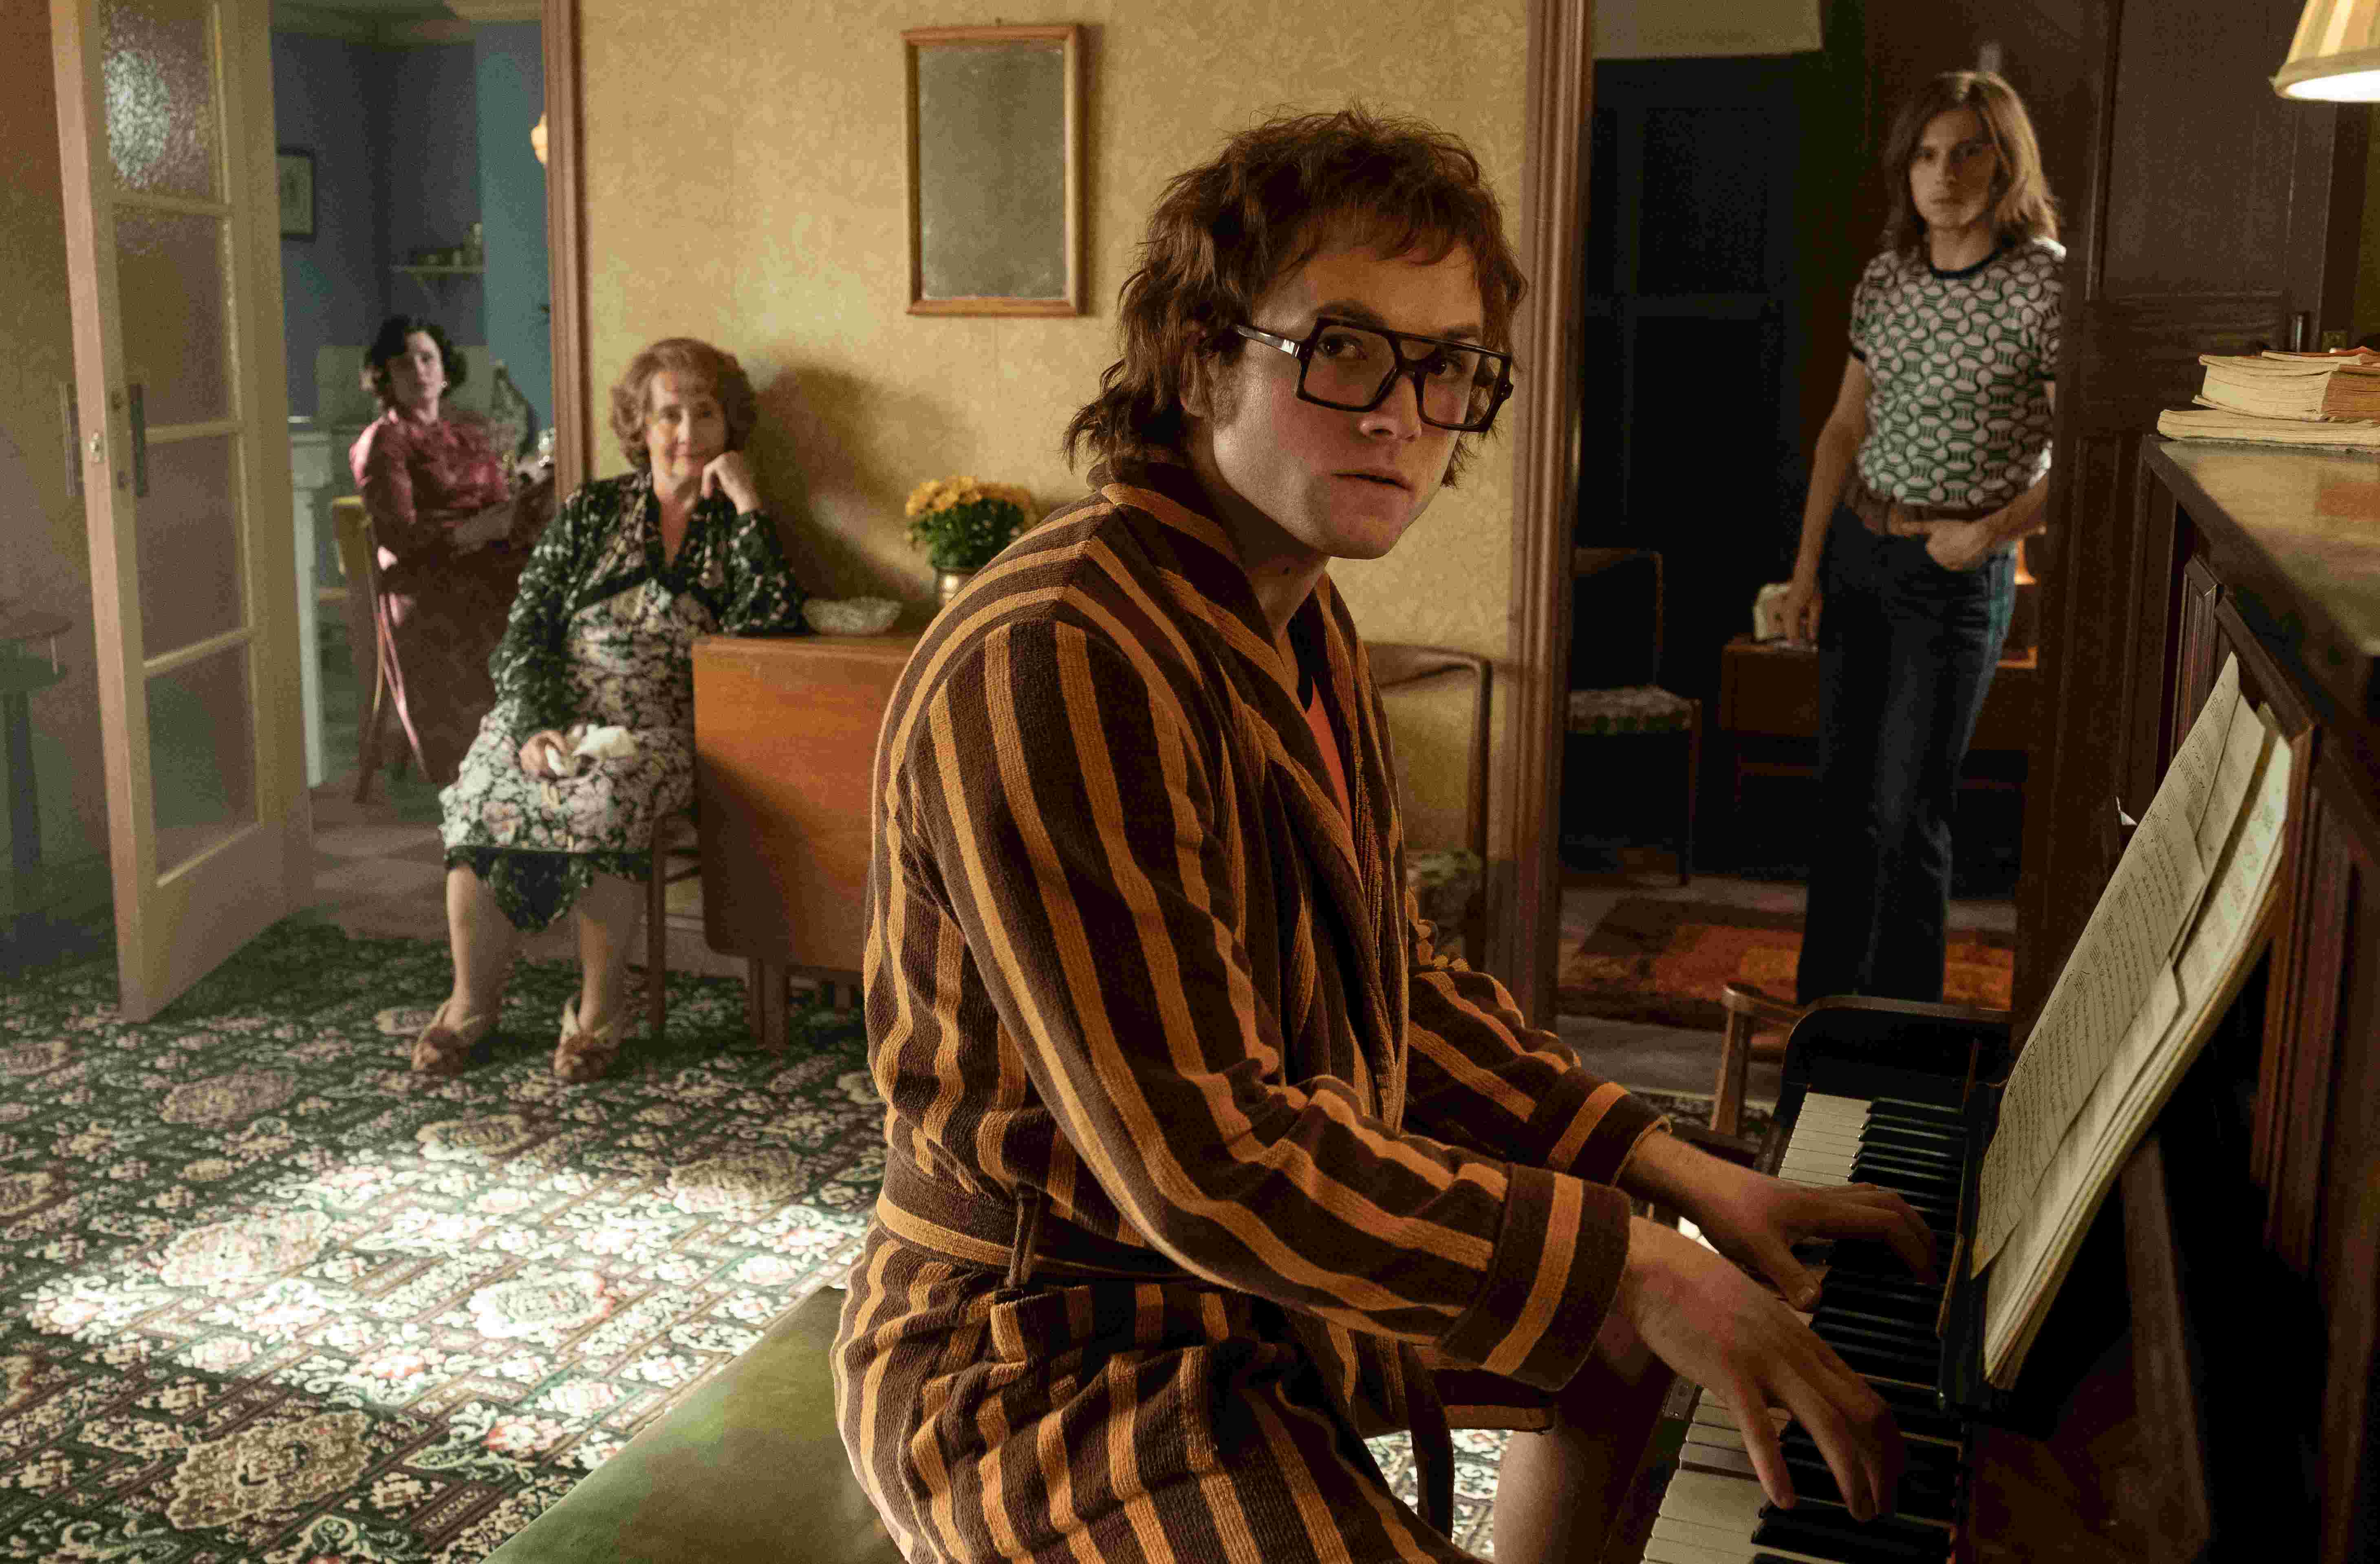 Movie review: Rocketman is an anthem for self-love